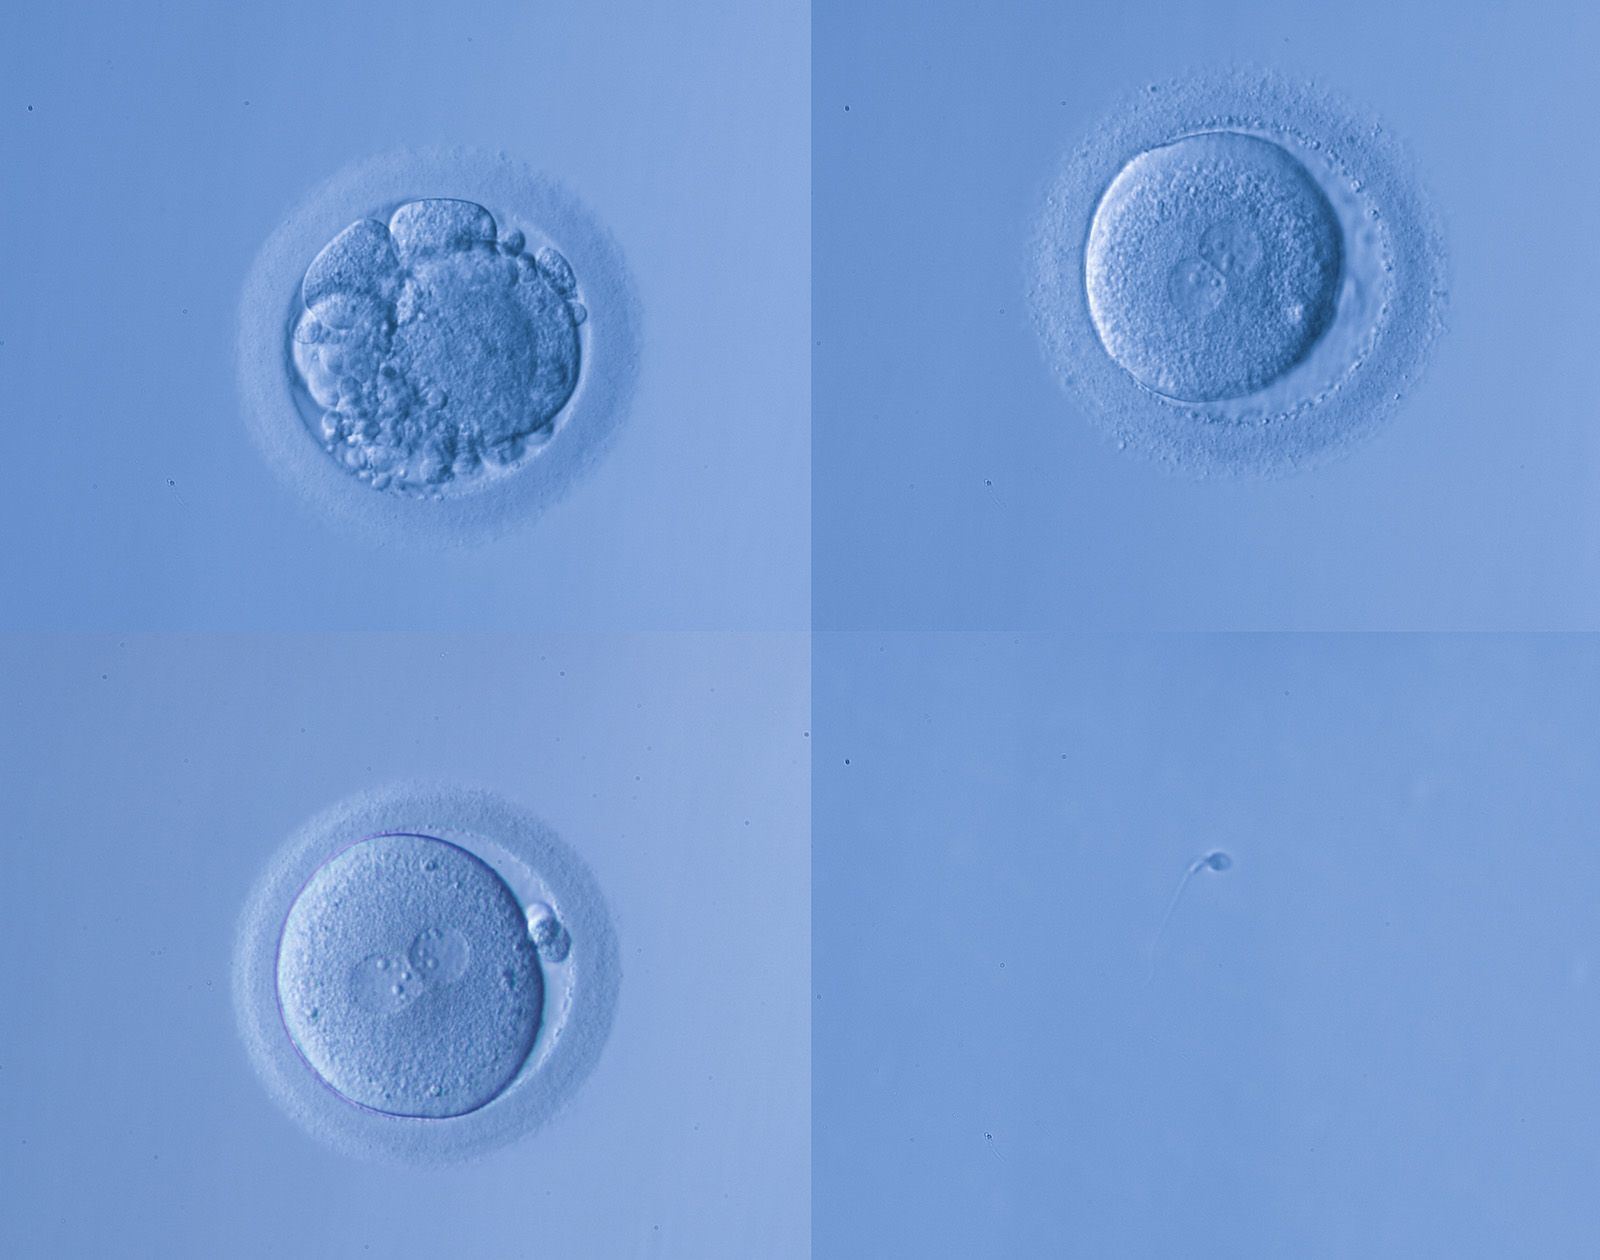 Cell division in IVF treatment